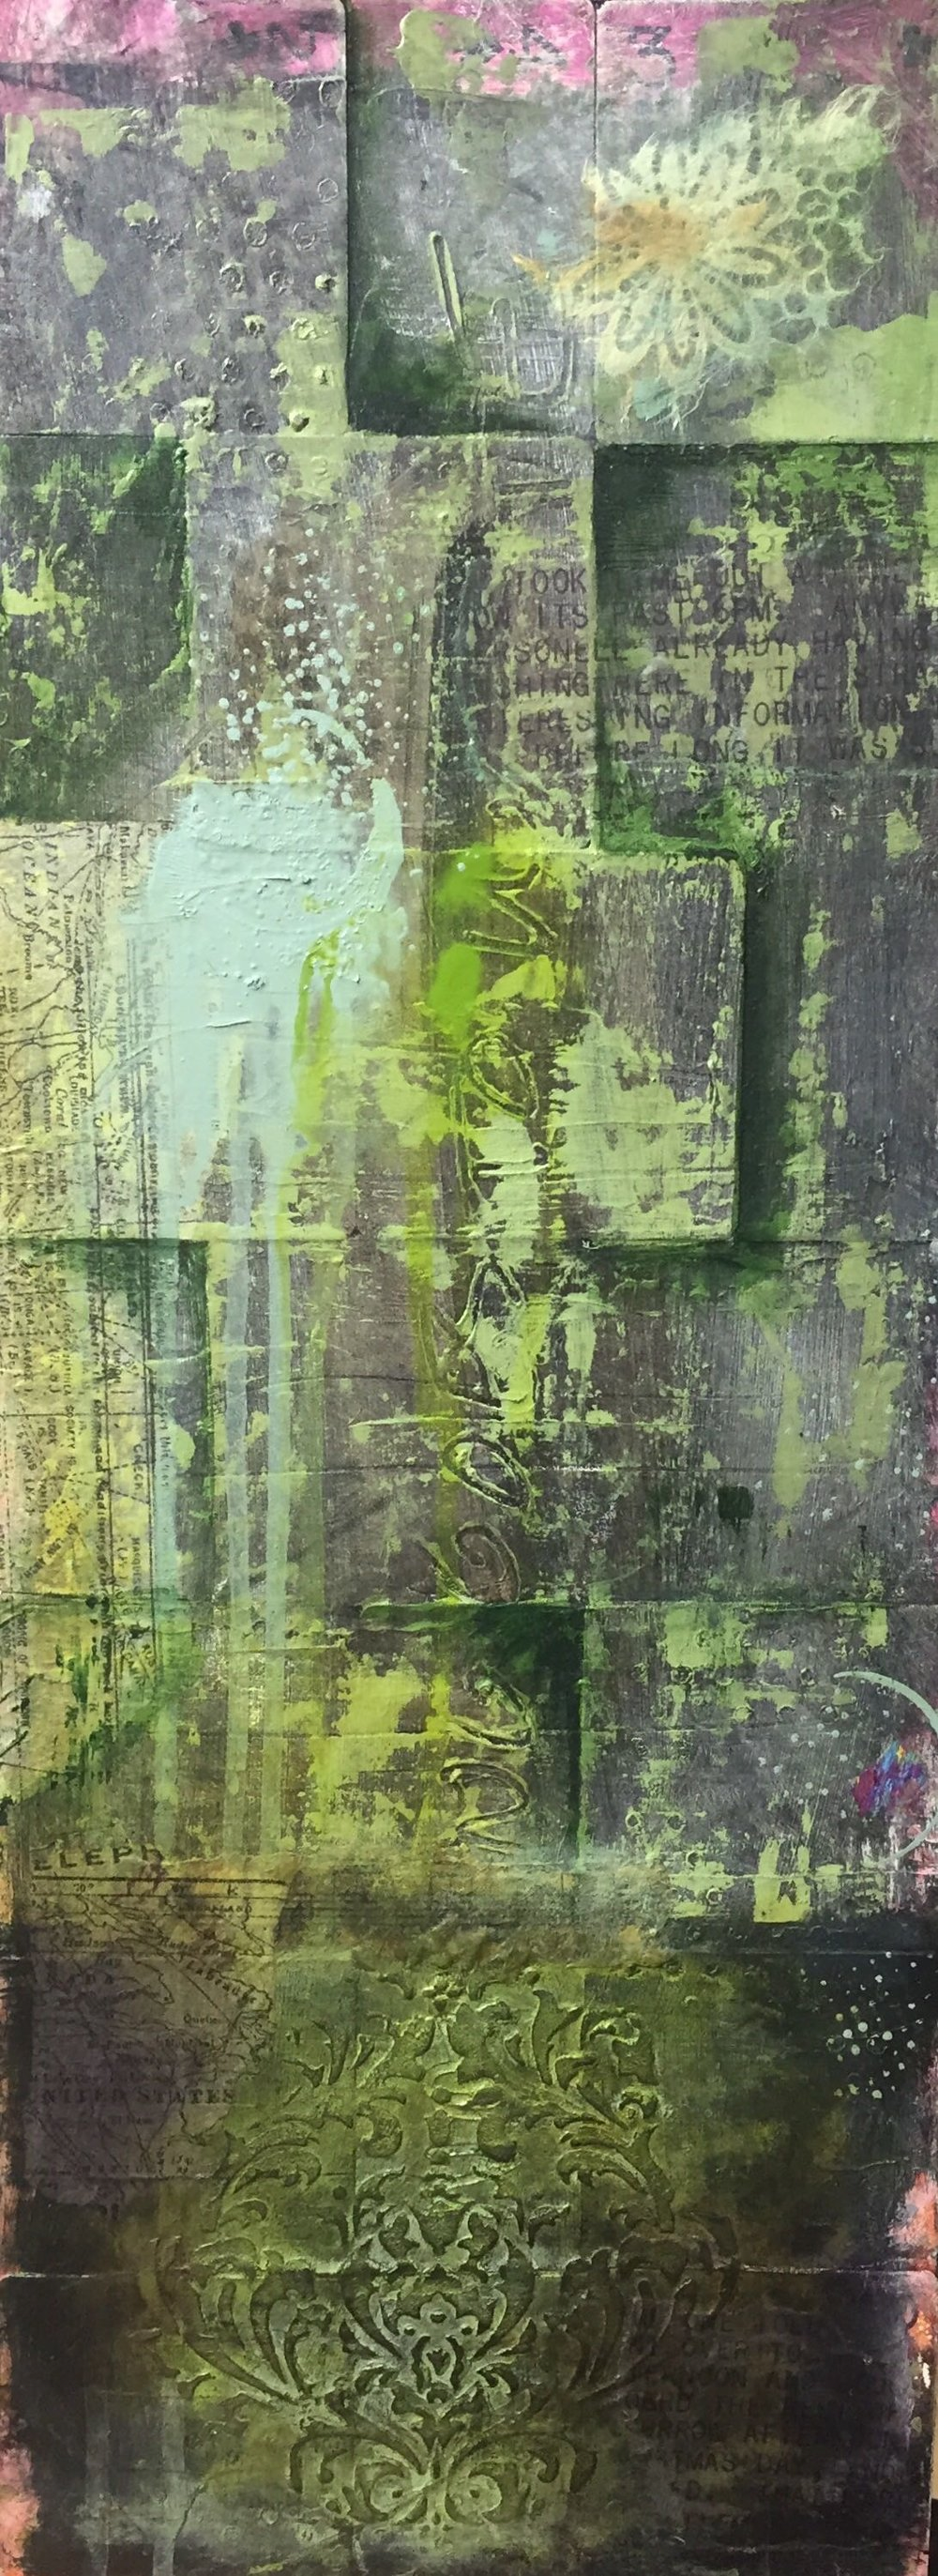 Garden Wall I Mixed Media on panel I 10 x 22 I $400